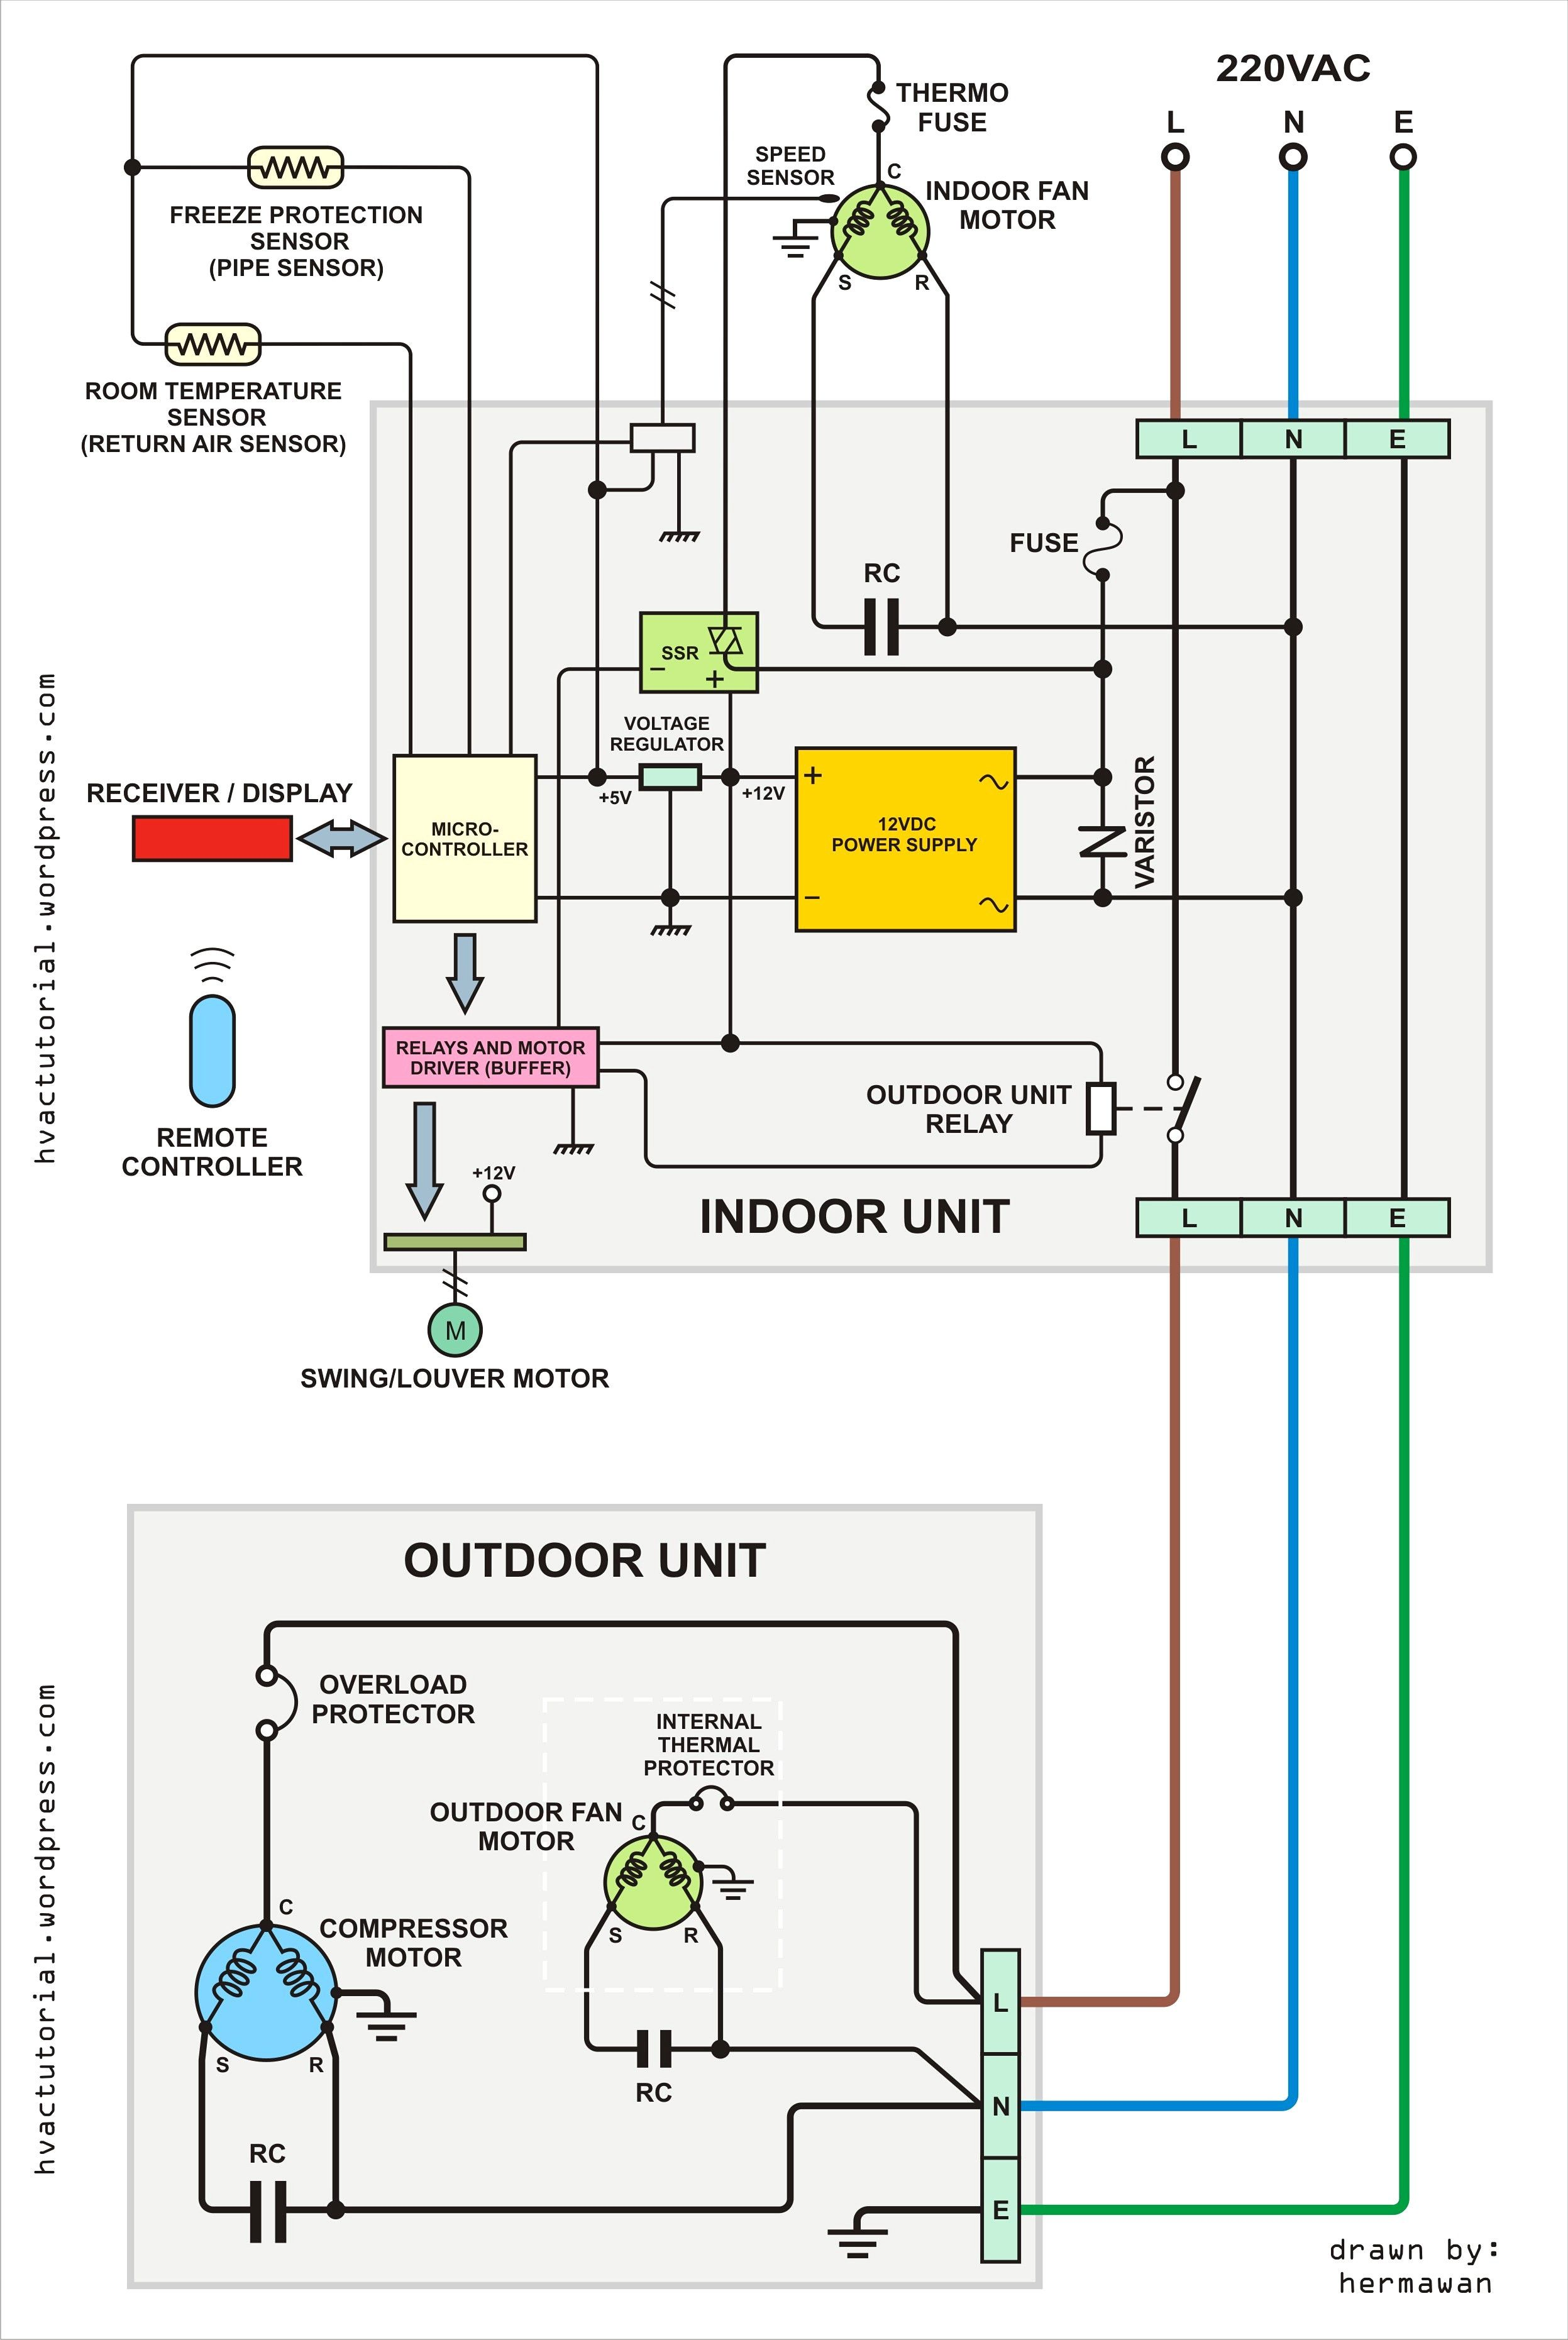 New Air Conditioning Split Unit Wiring Diagram Mercury ... Air Conditioning Wiring Diagram For Ford on